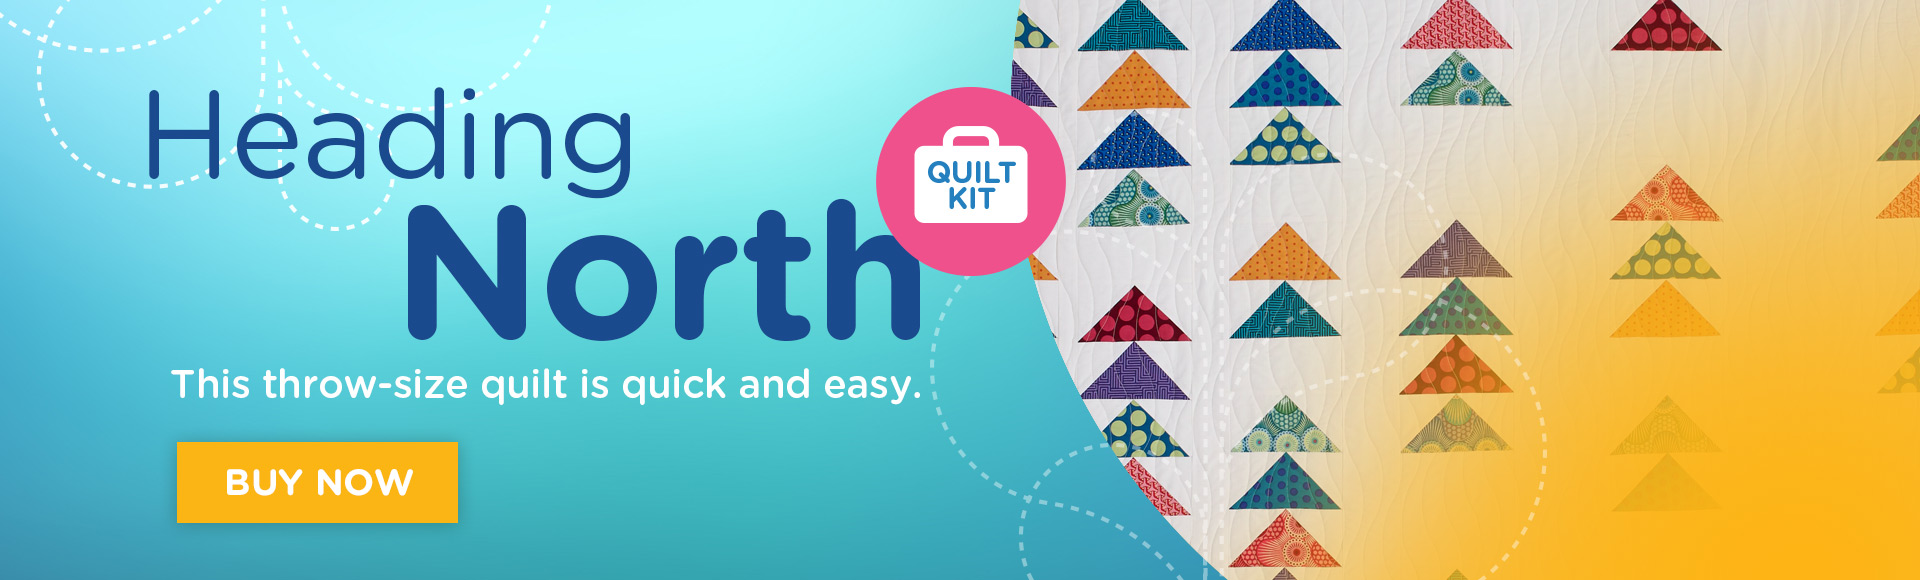 Heading North Quilt Kit Banner Ad